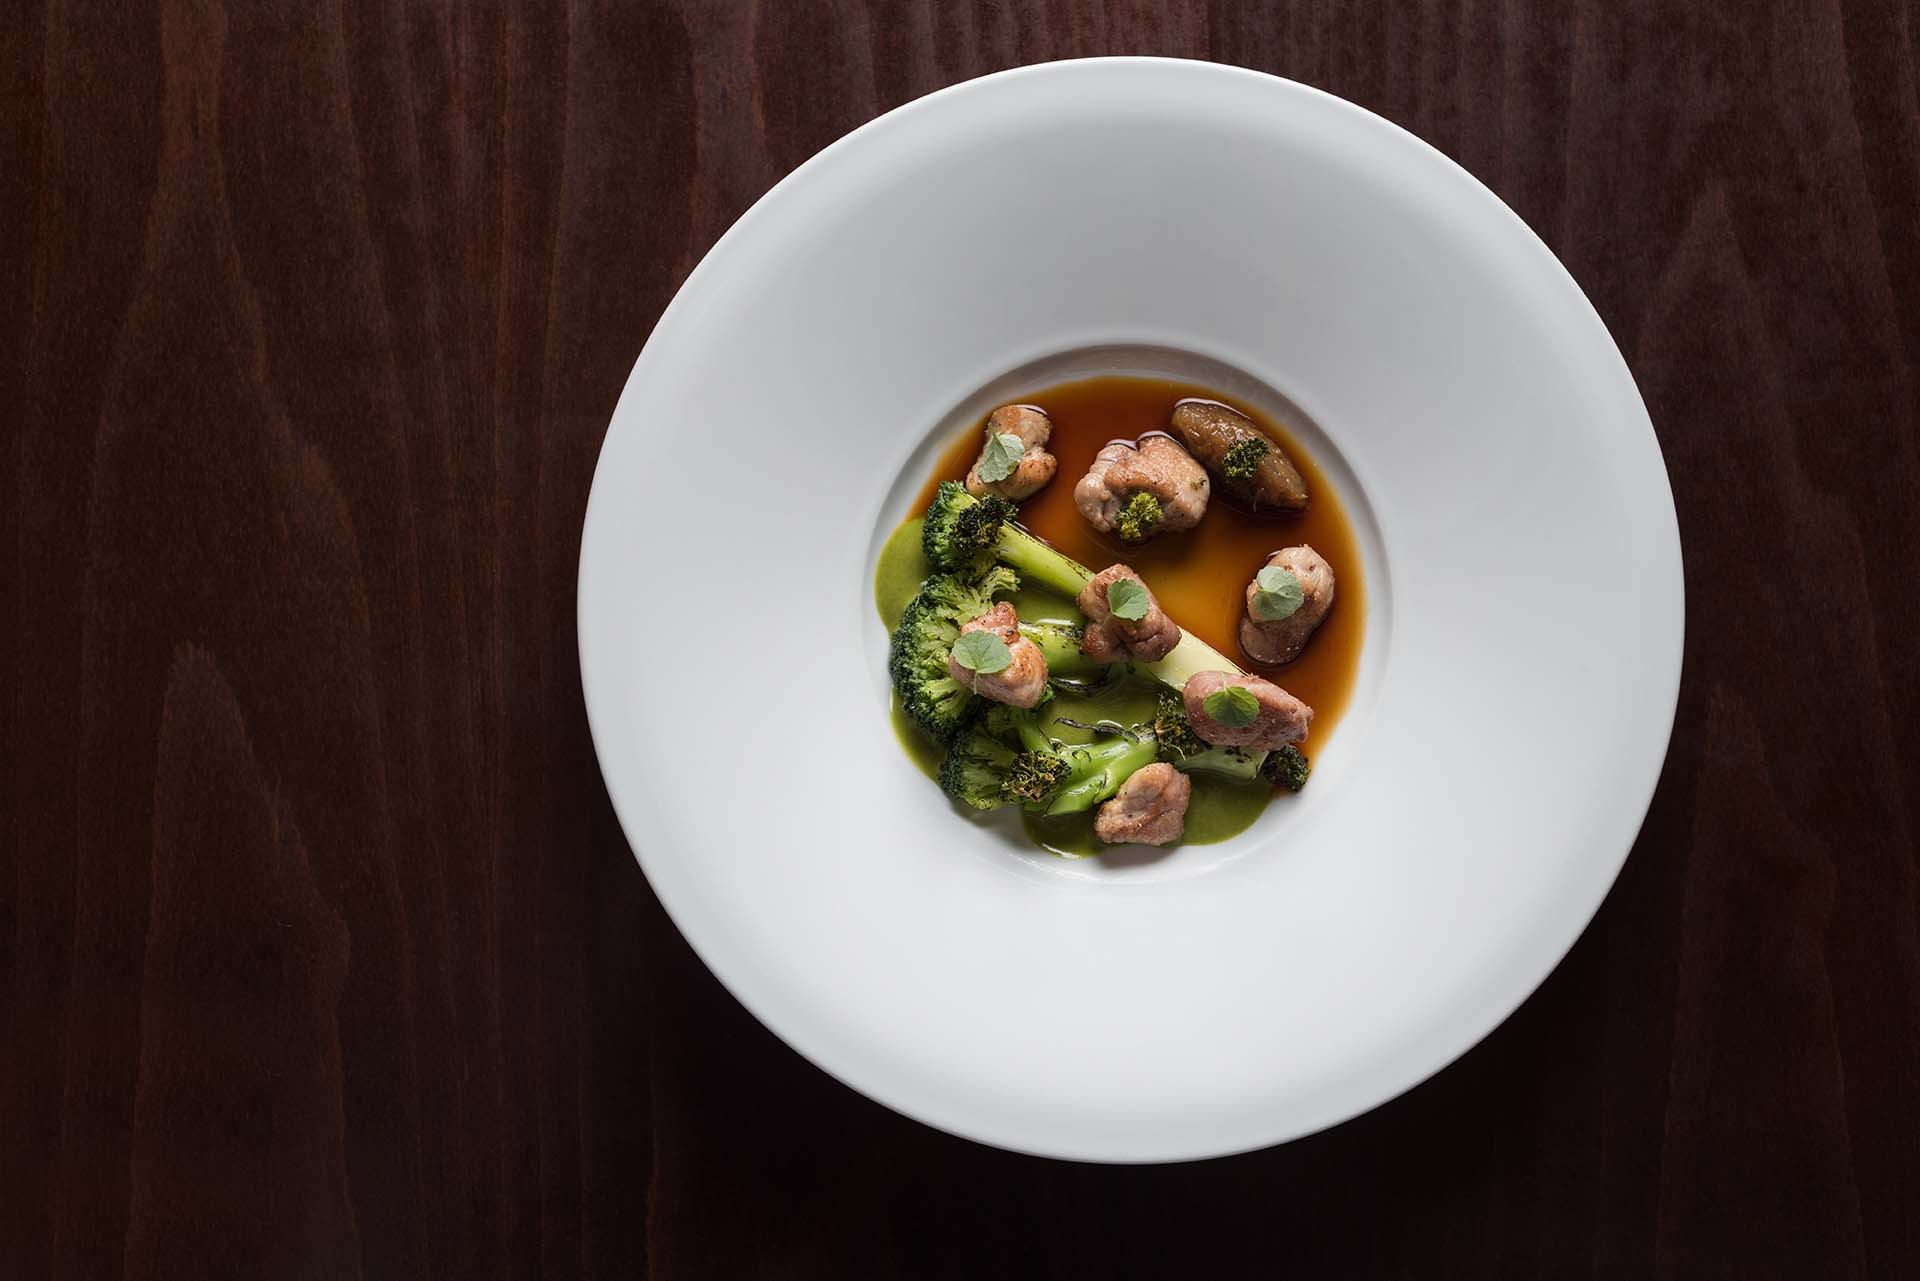 VEAL SWEETBREAD WITH BROCCOLI AND SESAME